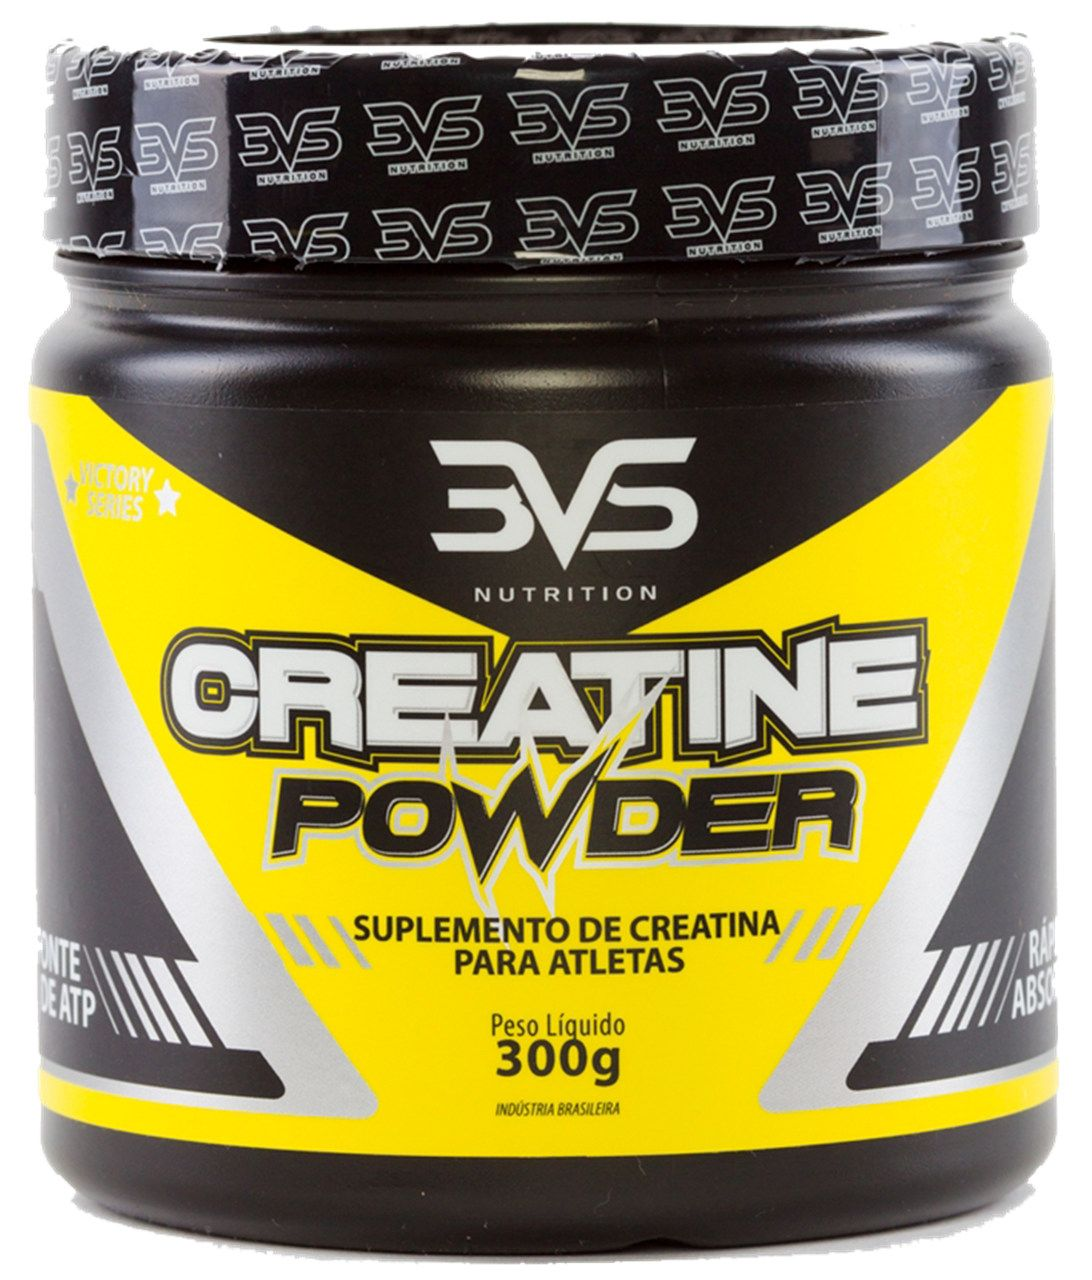 Creatine Powder 300g - 3VS Nutrition